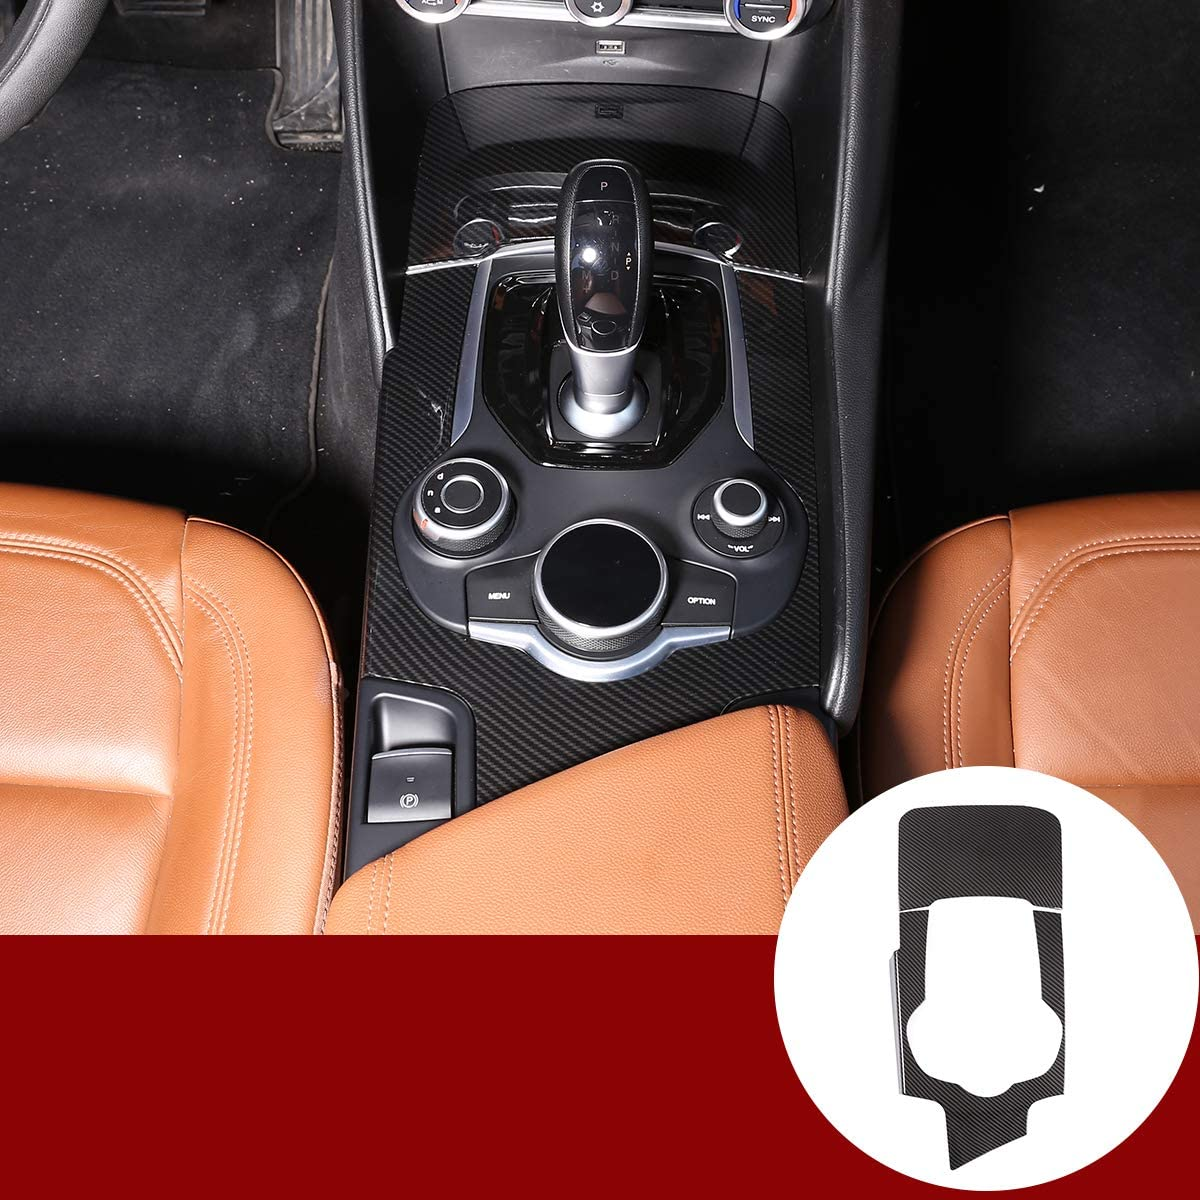 YIWANG Carbon Fiber ABS Center Console Gear Shift Panel Trim 2pcs For Alfa Romeo Giulia 2017-2019 Left Hand Driver Accessories